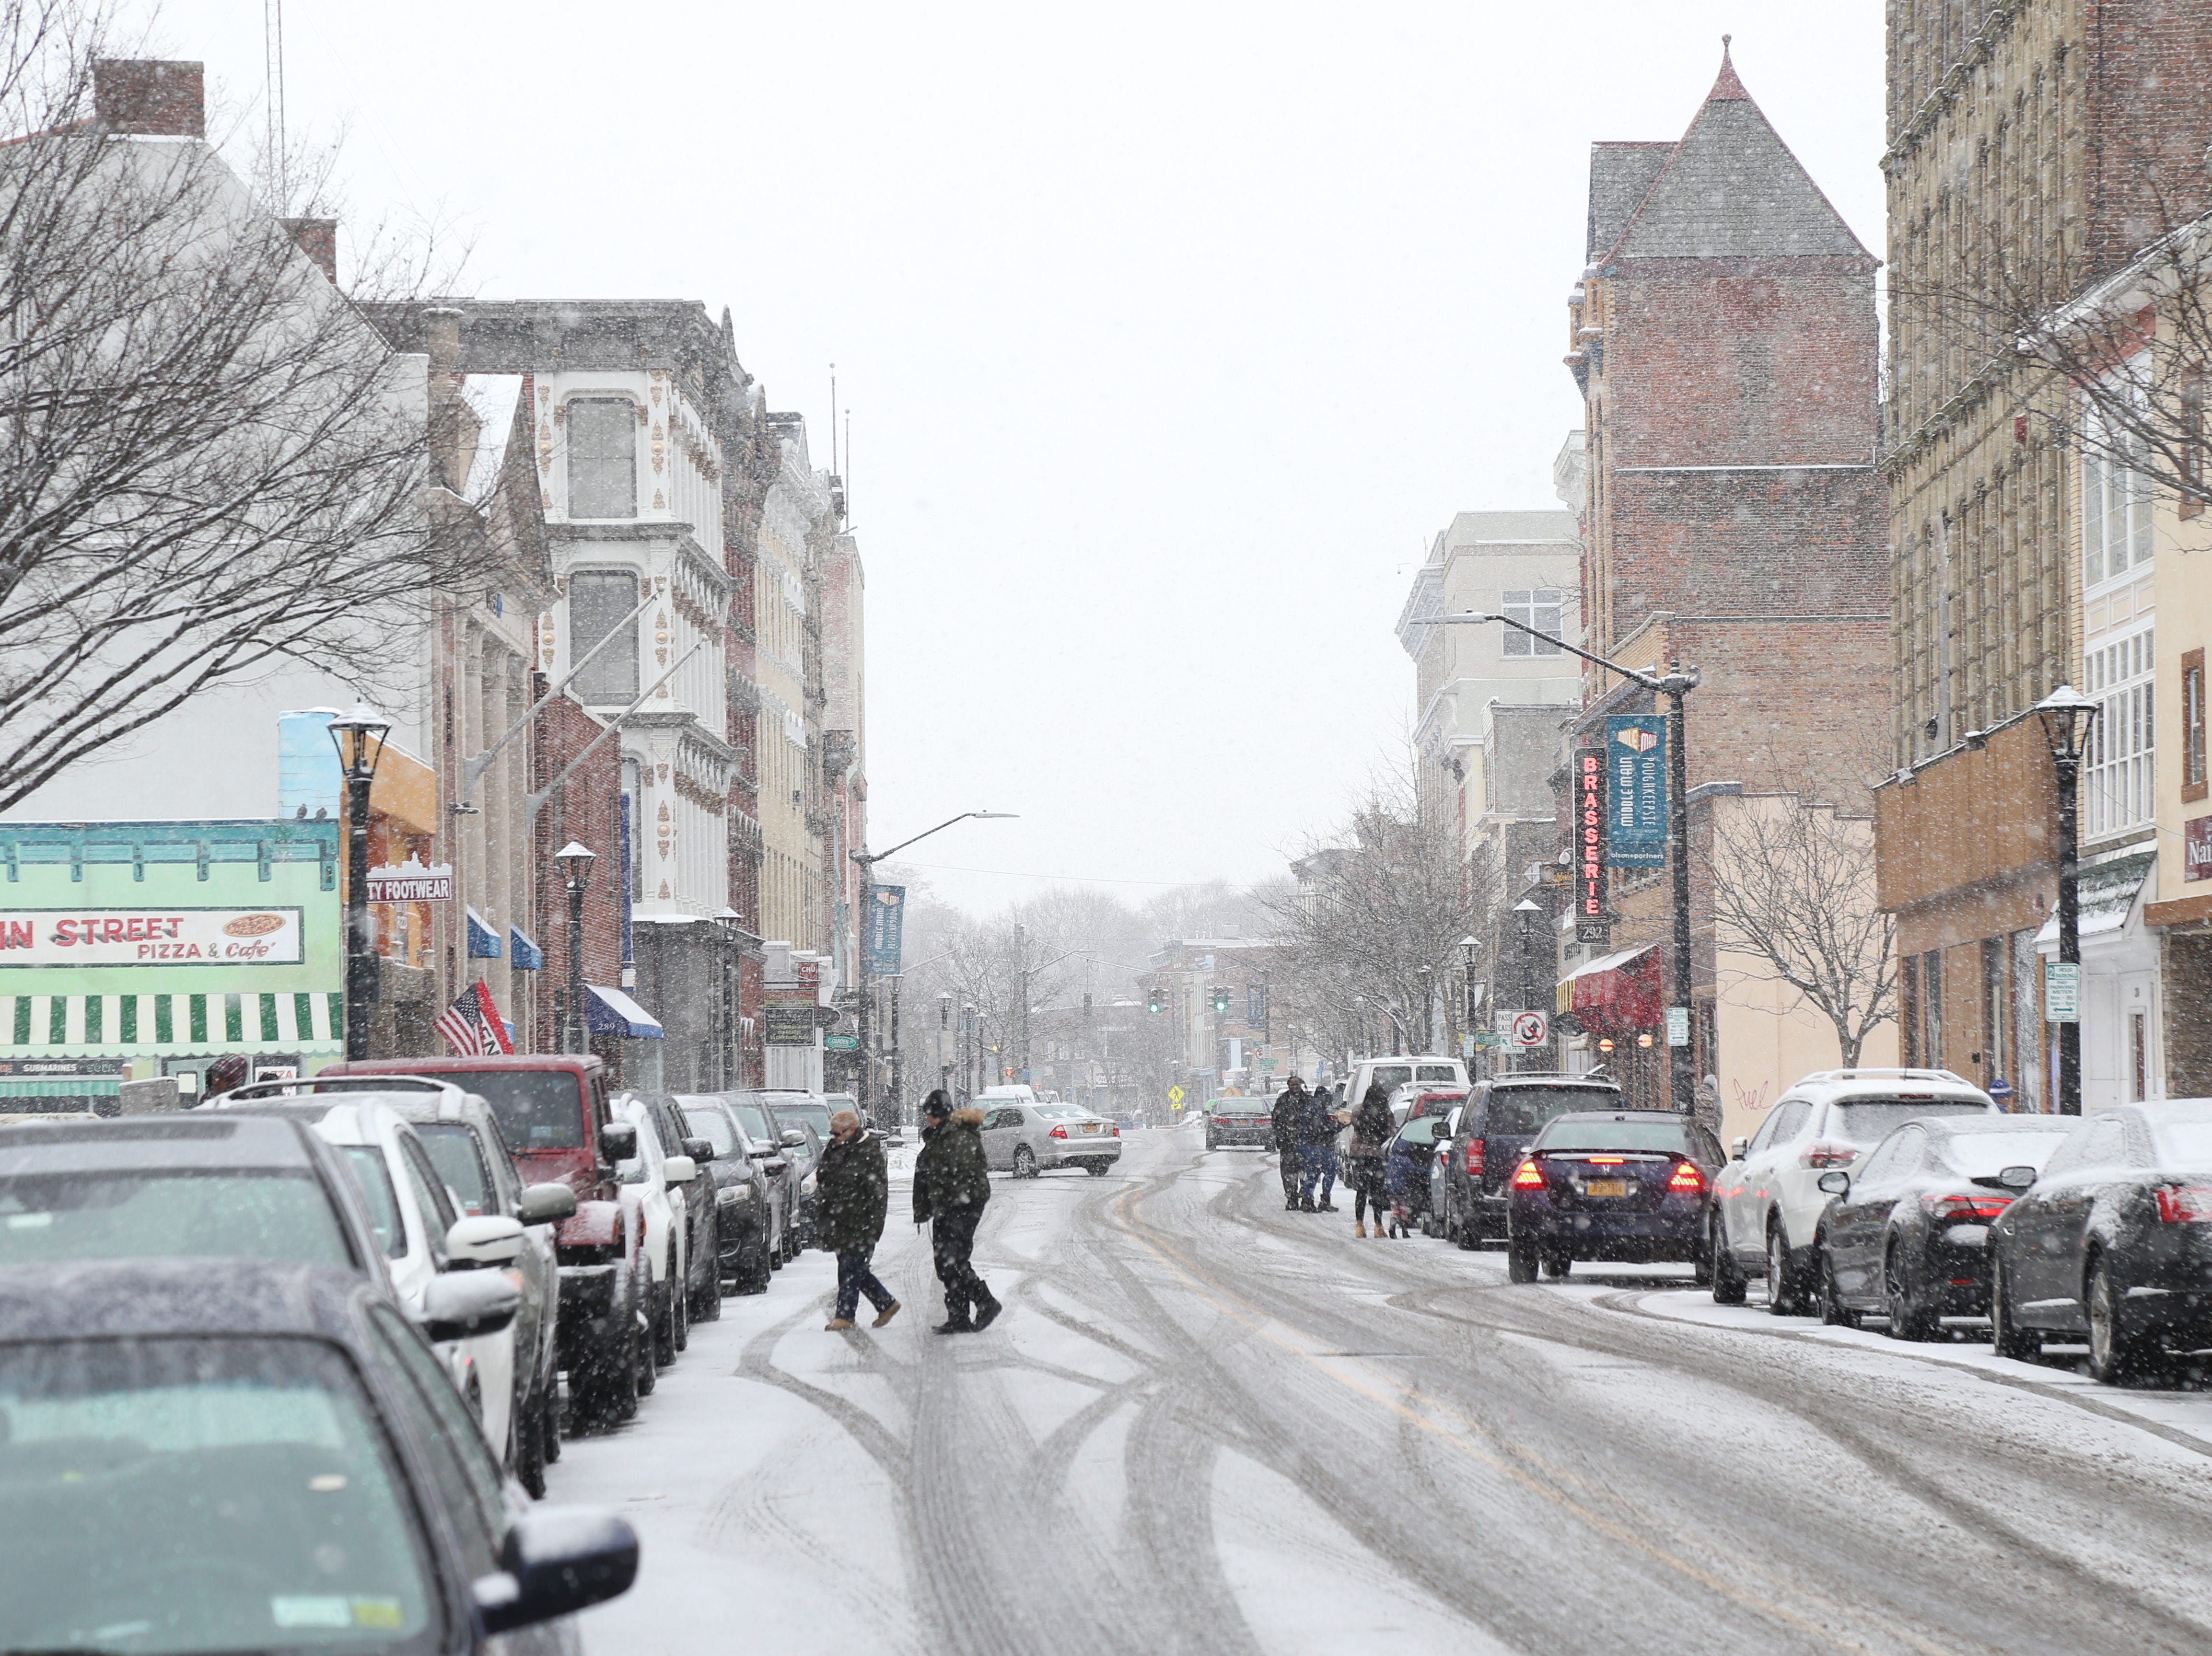 Snow begins to accumulate during the lunch rush on Main Street in the City of Poughkeepsie on January 29, 2019.